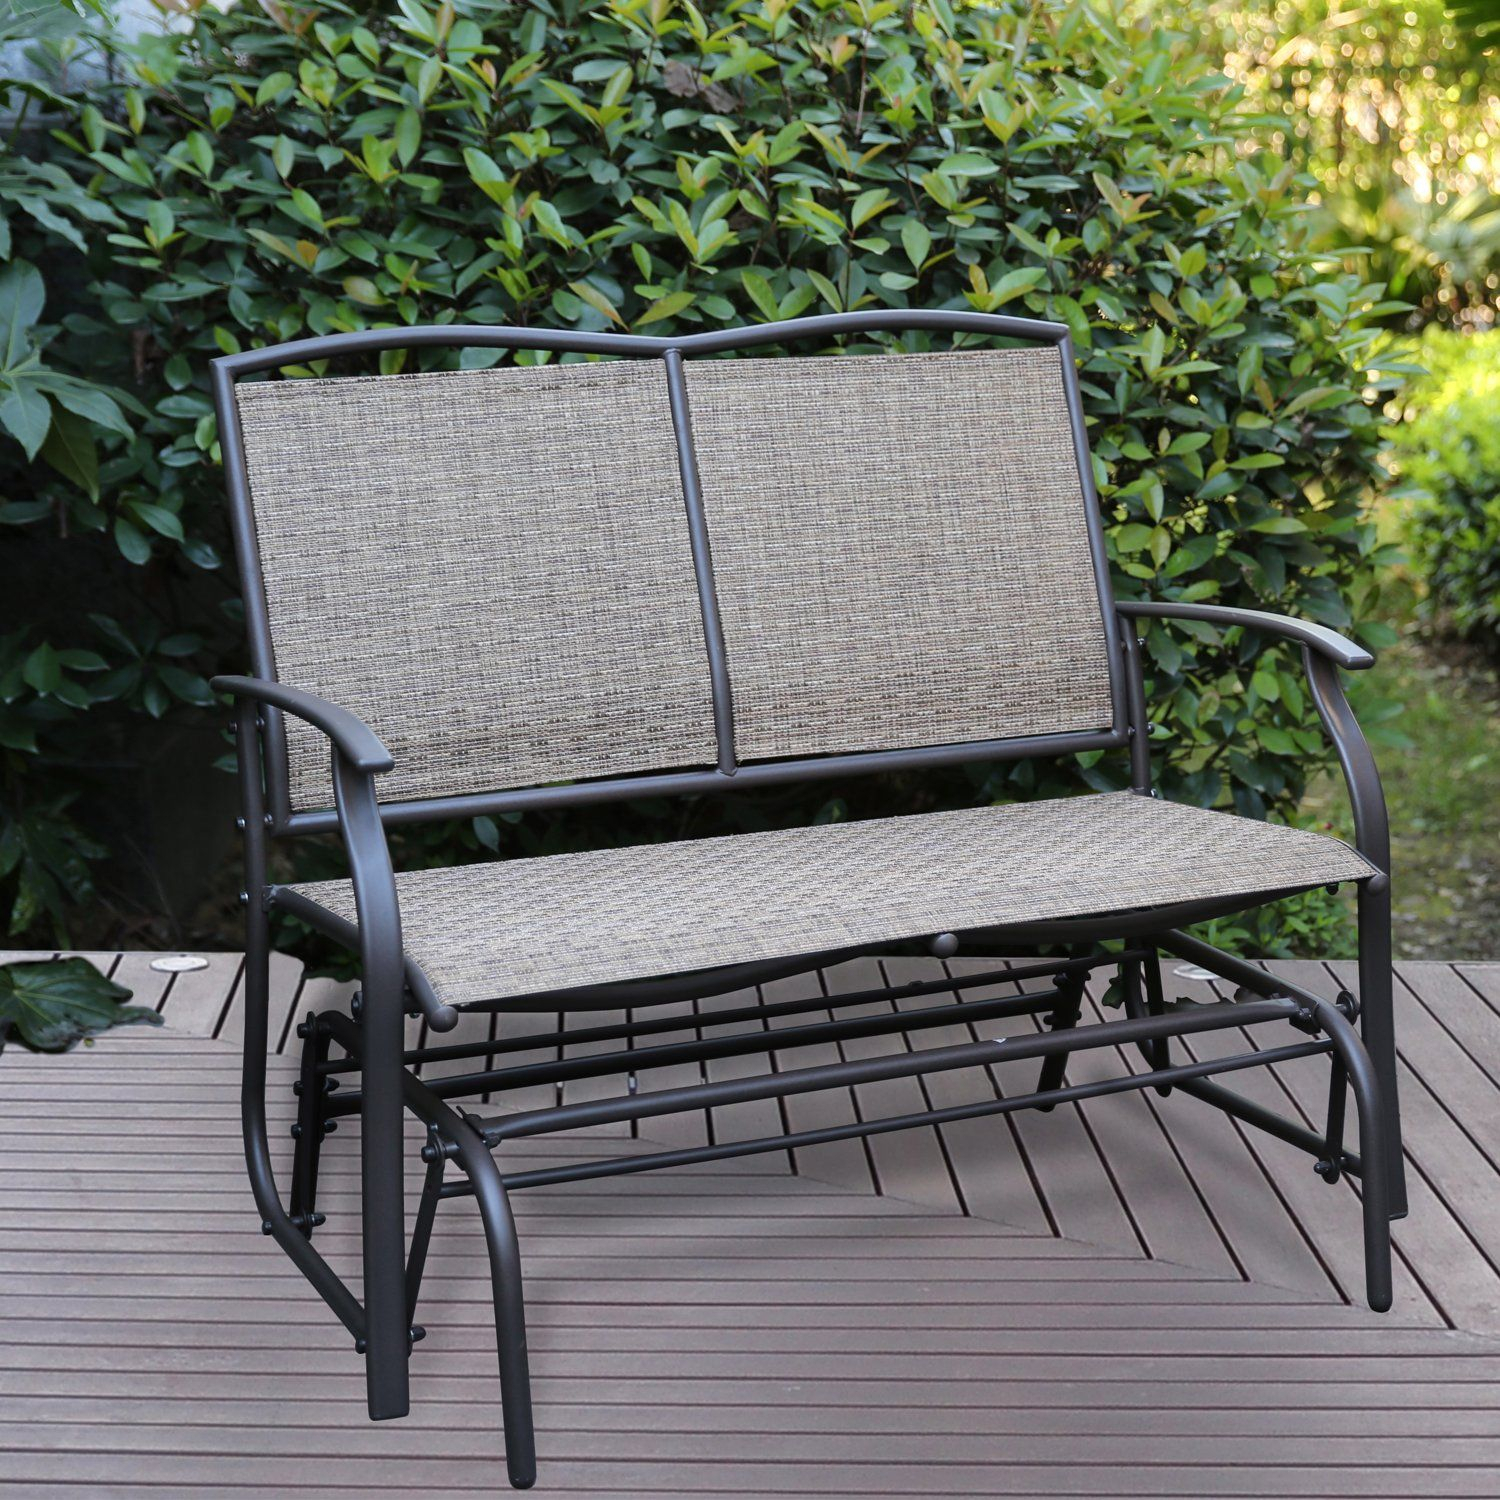 Patio Tree Patio Swing Glider Bench For 2 Person All Throughout Outdoor Steel Patio Swing Glider Benches (View 7 of 25)